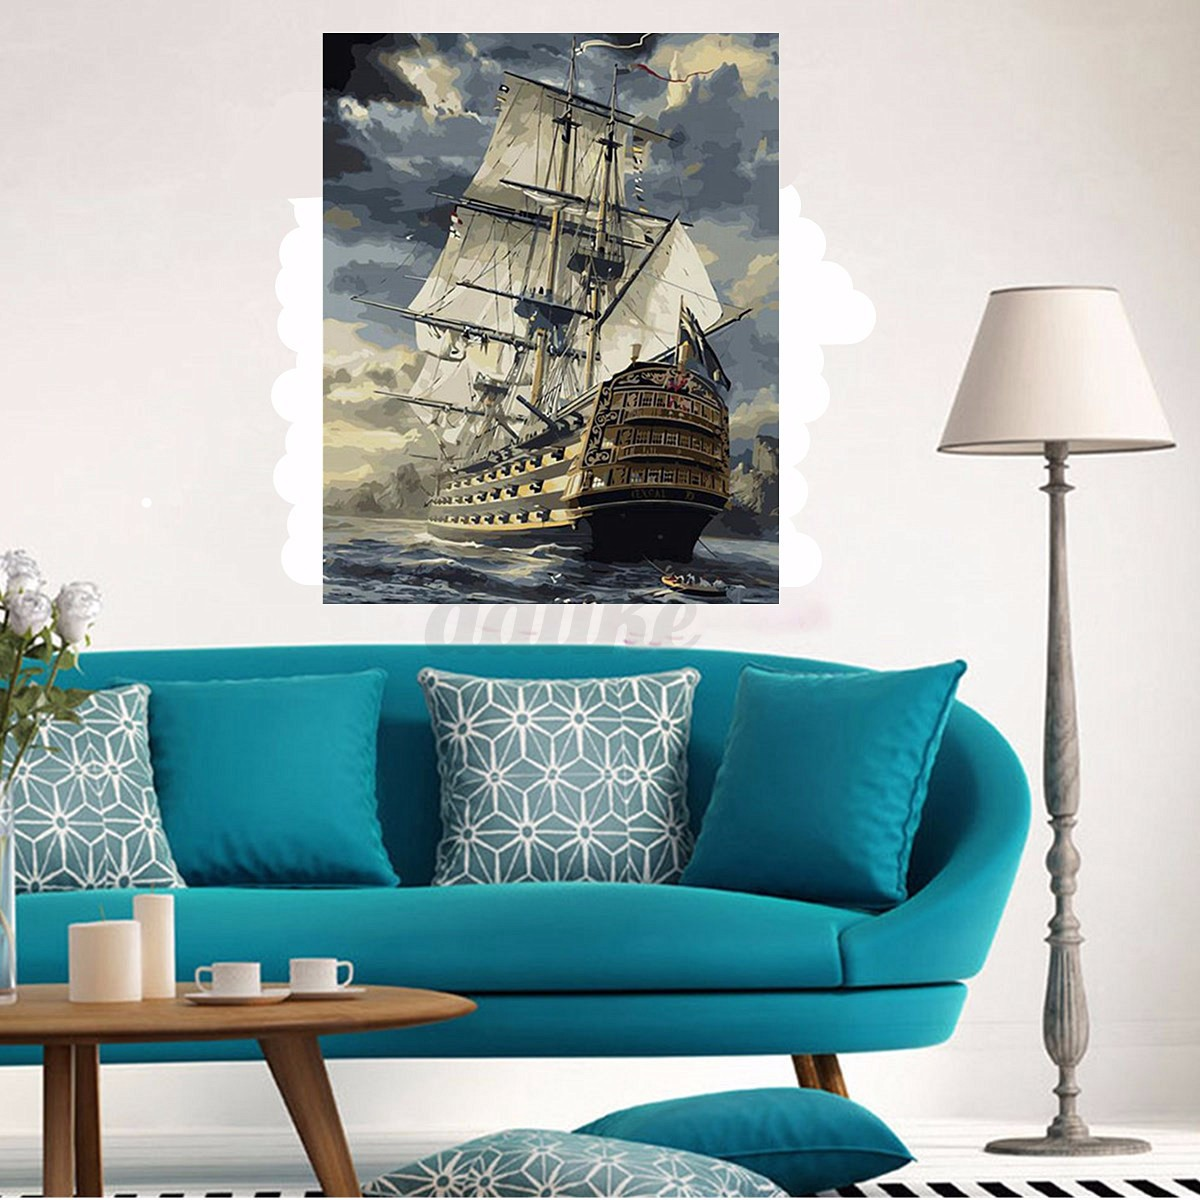 Wood framed 50x40cm diy paint by number kit canvas sailing for Ship decor home